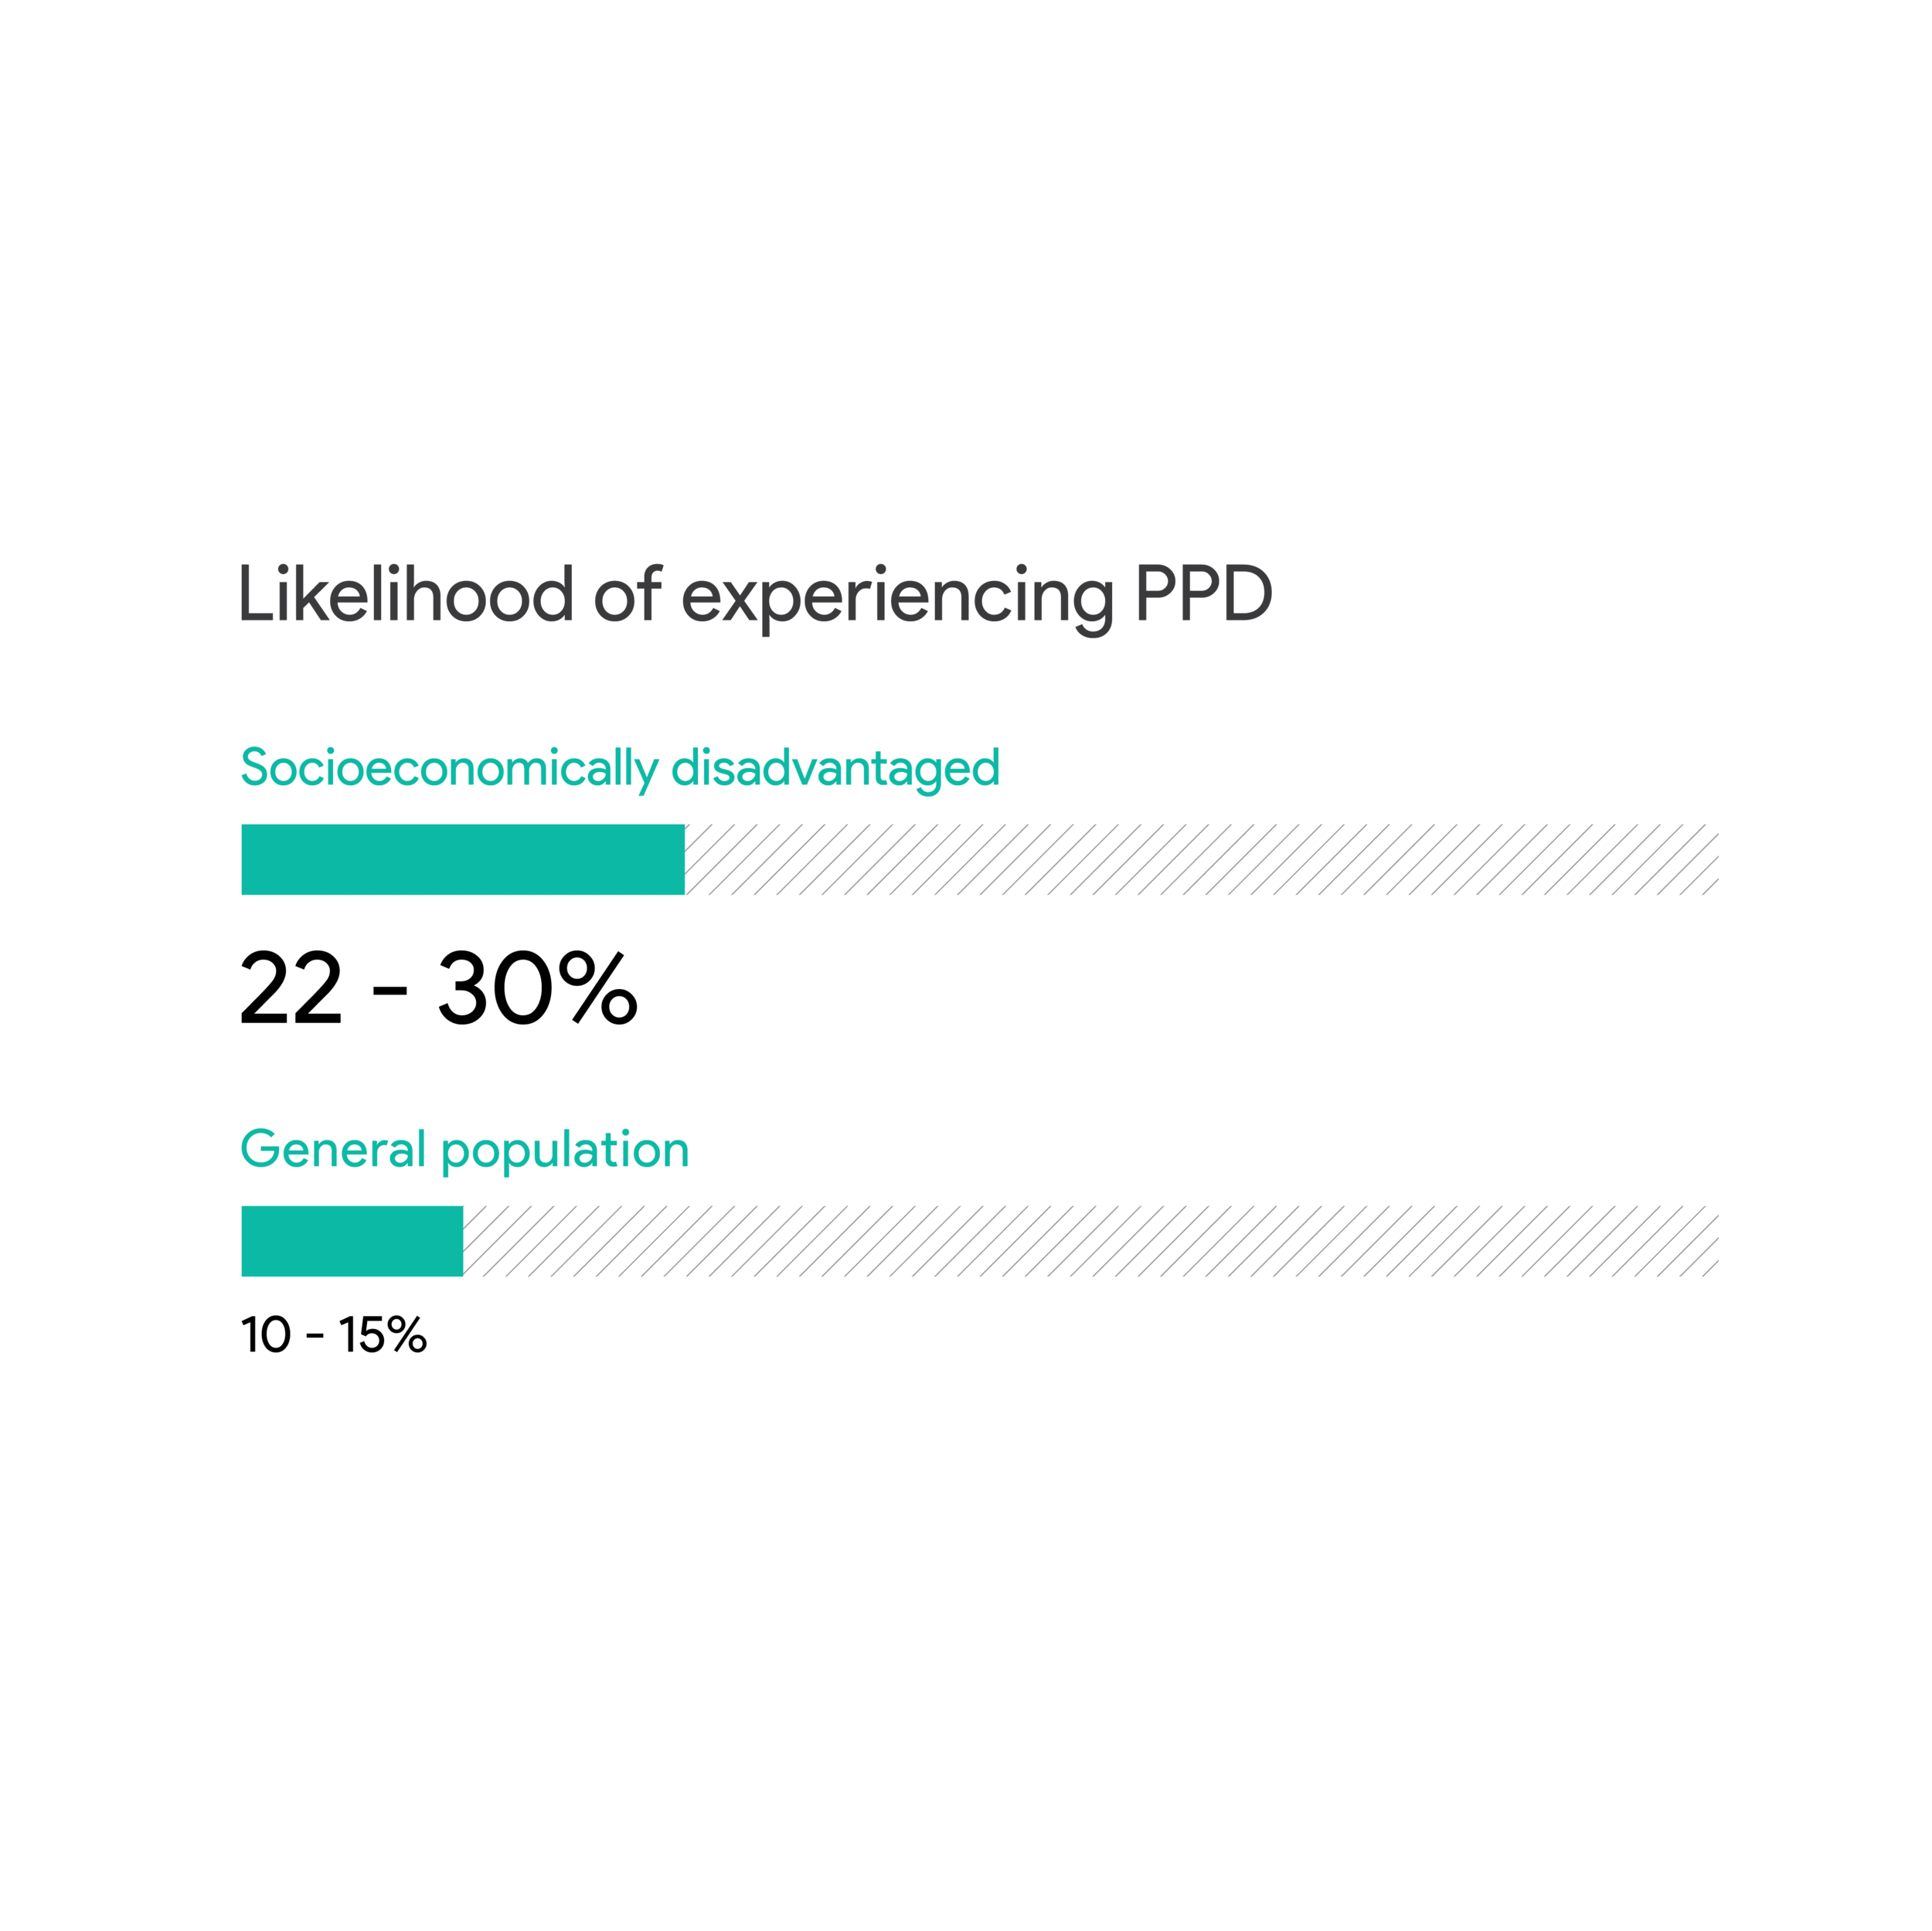 The statistic drove us to find out some reasons why low-income parents were more likely to experience PPD.